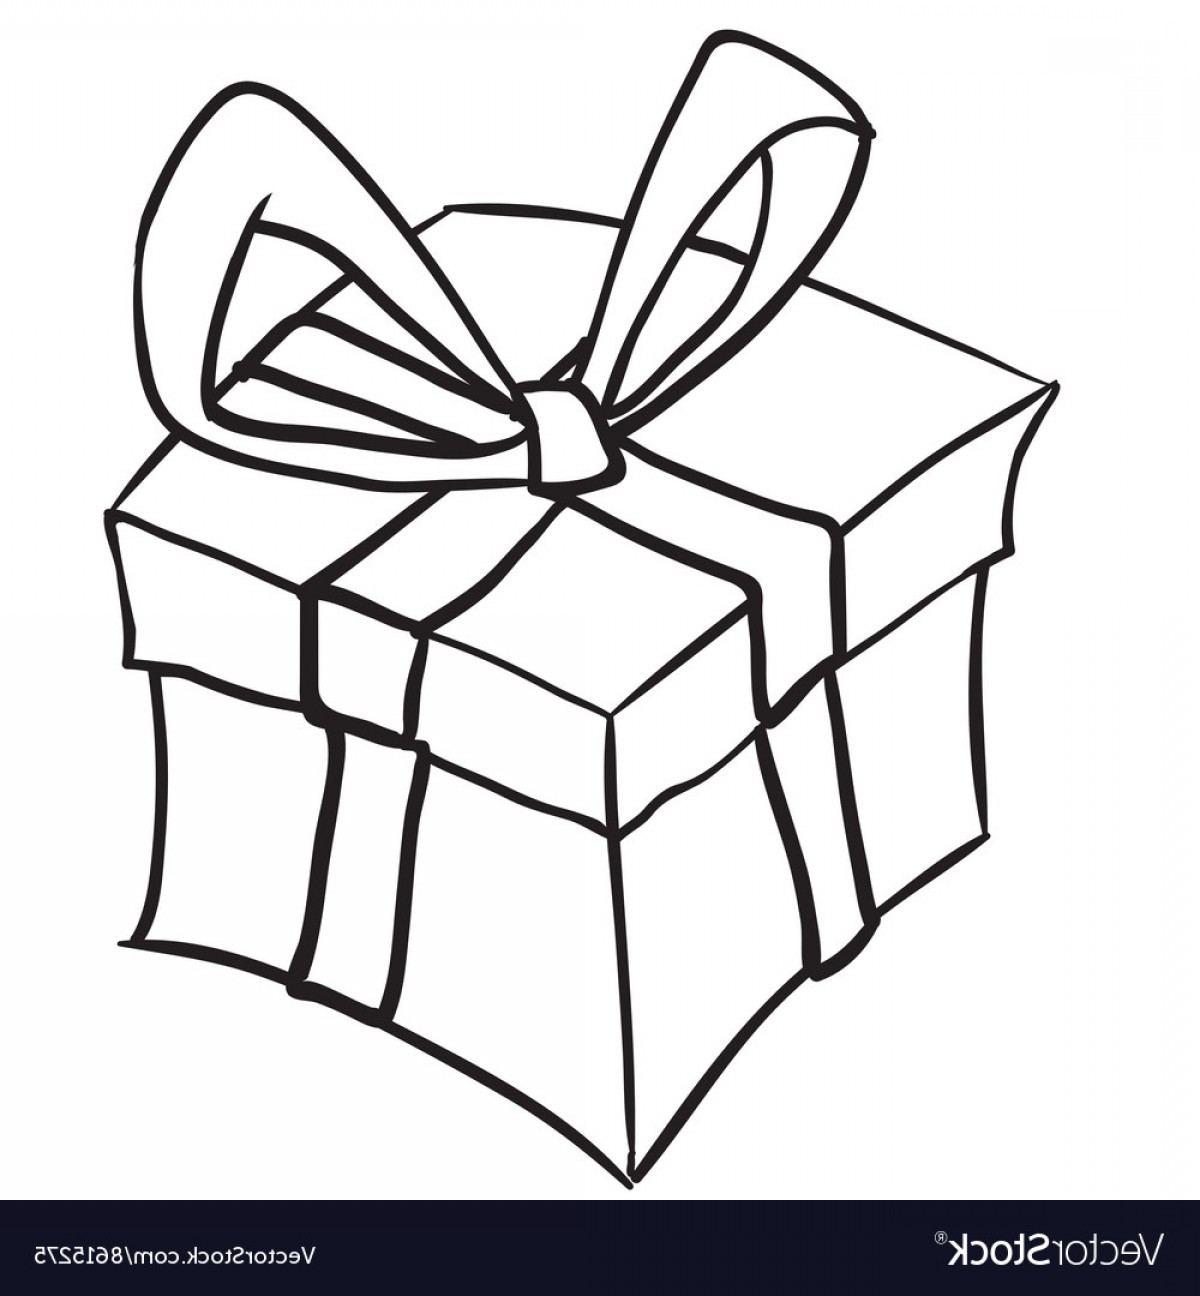 Simple Black And White Gift Box Vector.